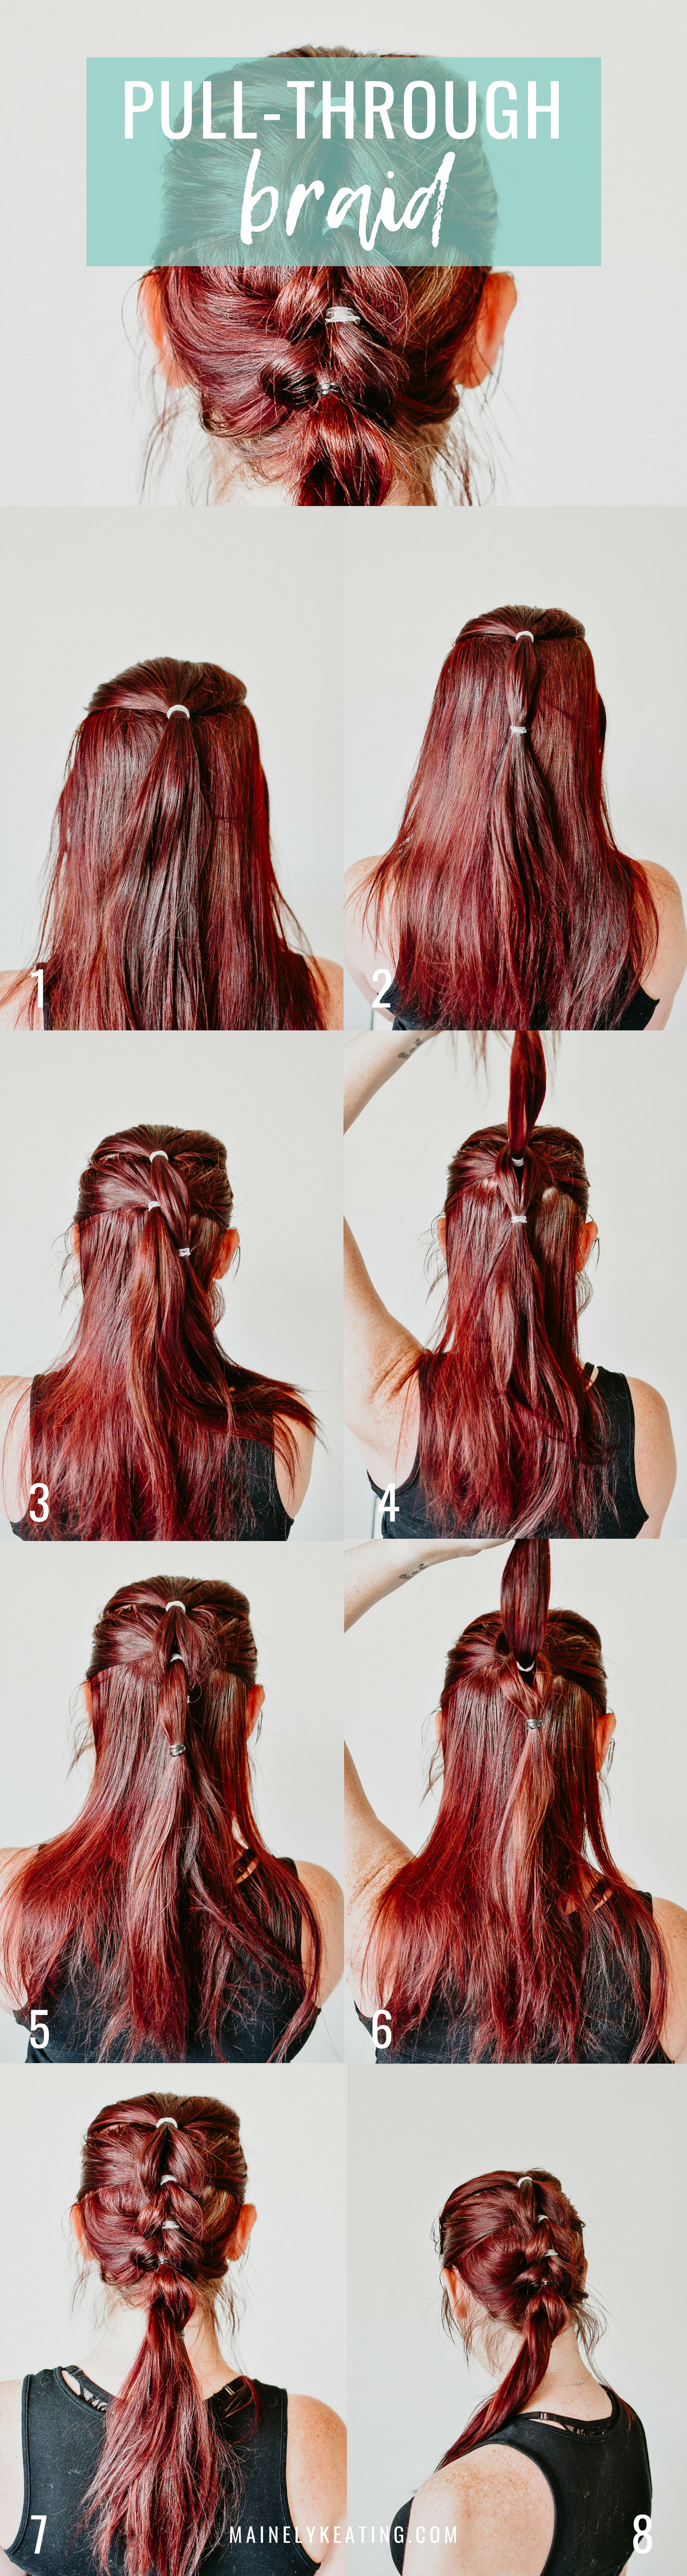 3 Fun and Easy Summer Hairstyles - Pull-Through Braid